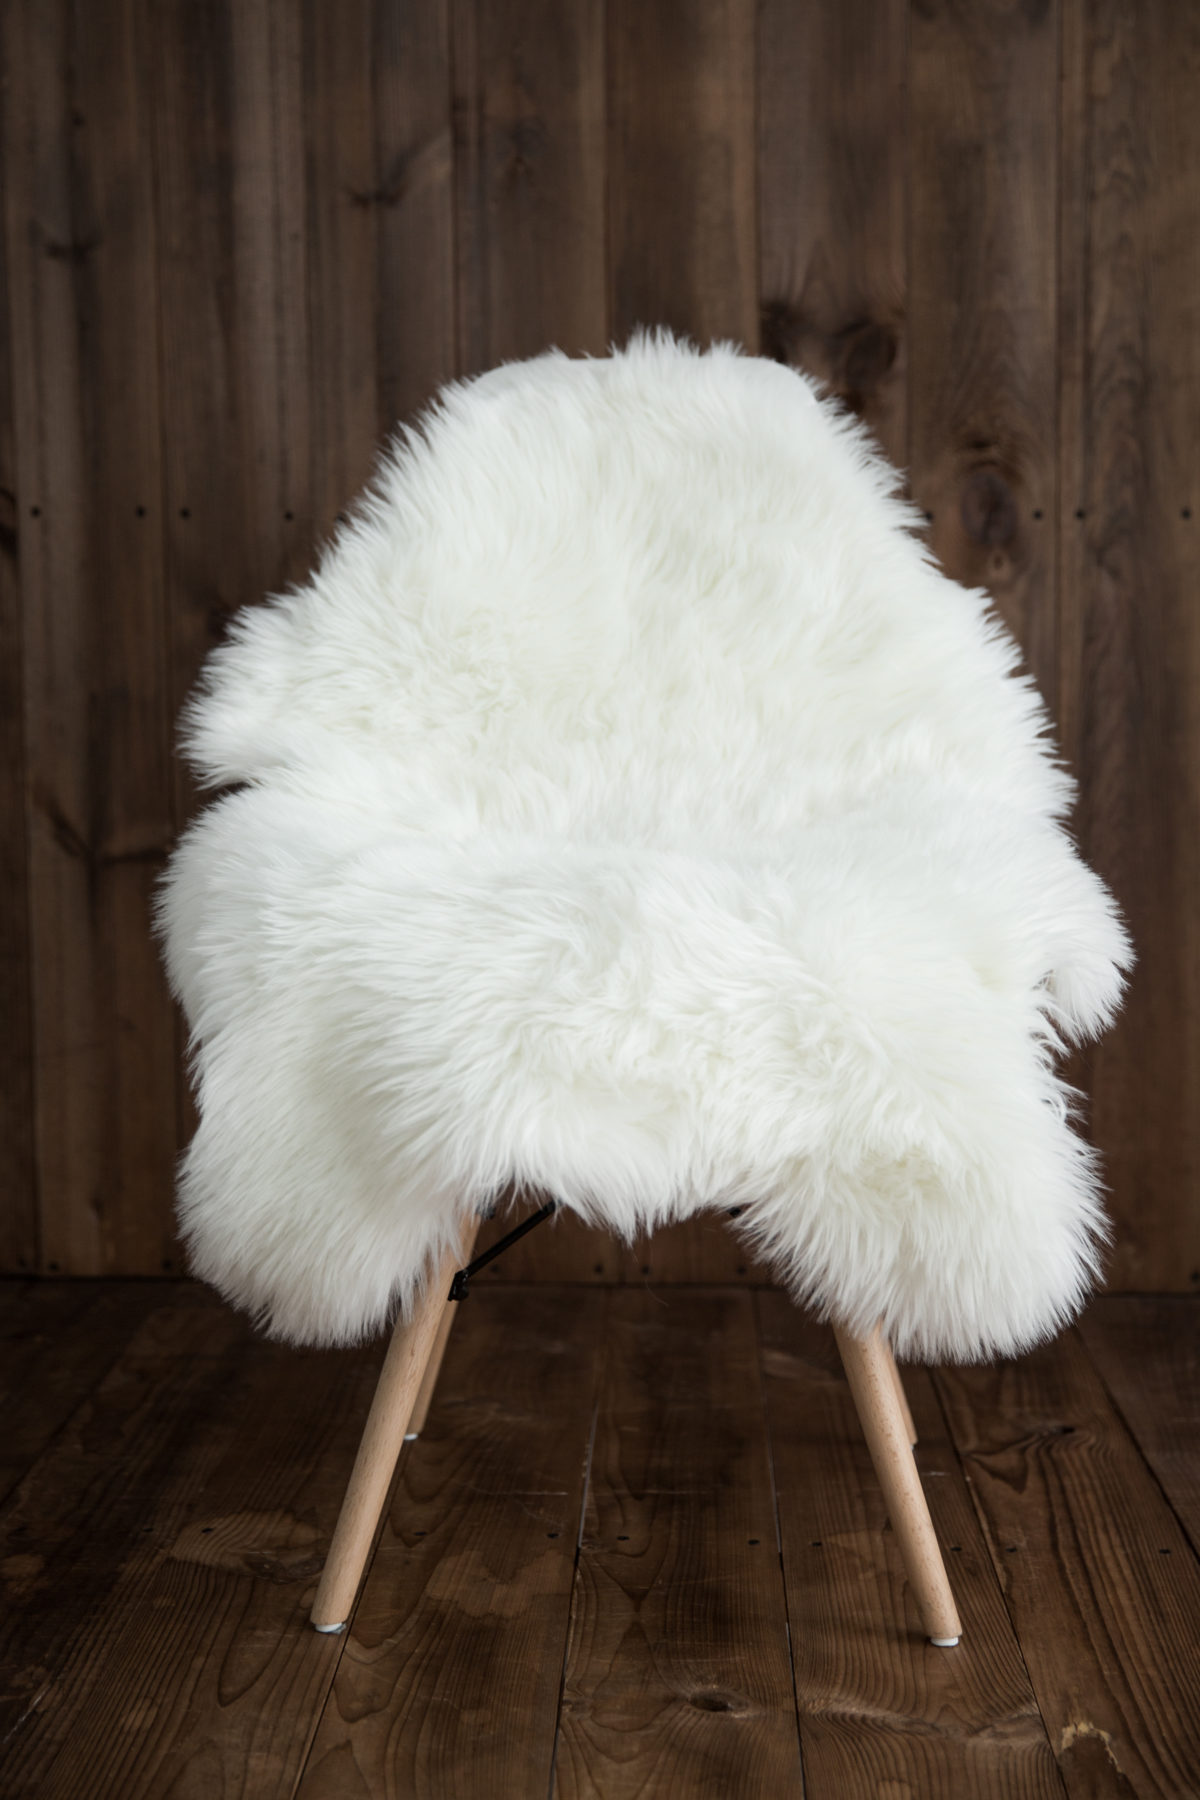 Sheepskin Faux Fur Chair Cover/ Rug /Seat Pad/ Area Rugs For Bedroom Sofa Floor Vanity Nursery Decor WHITE : faux chair - Cheerinfomania.Com